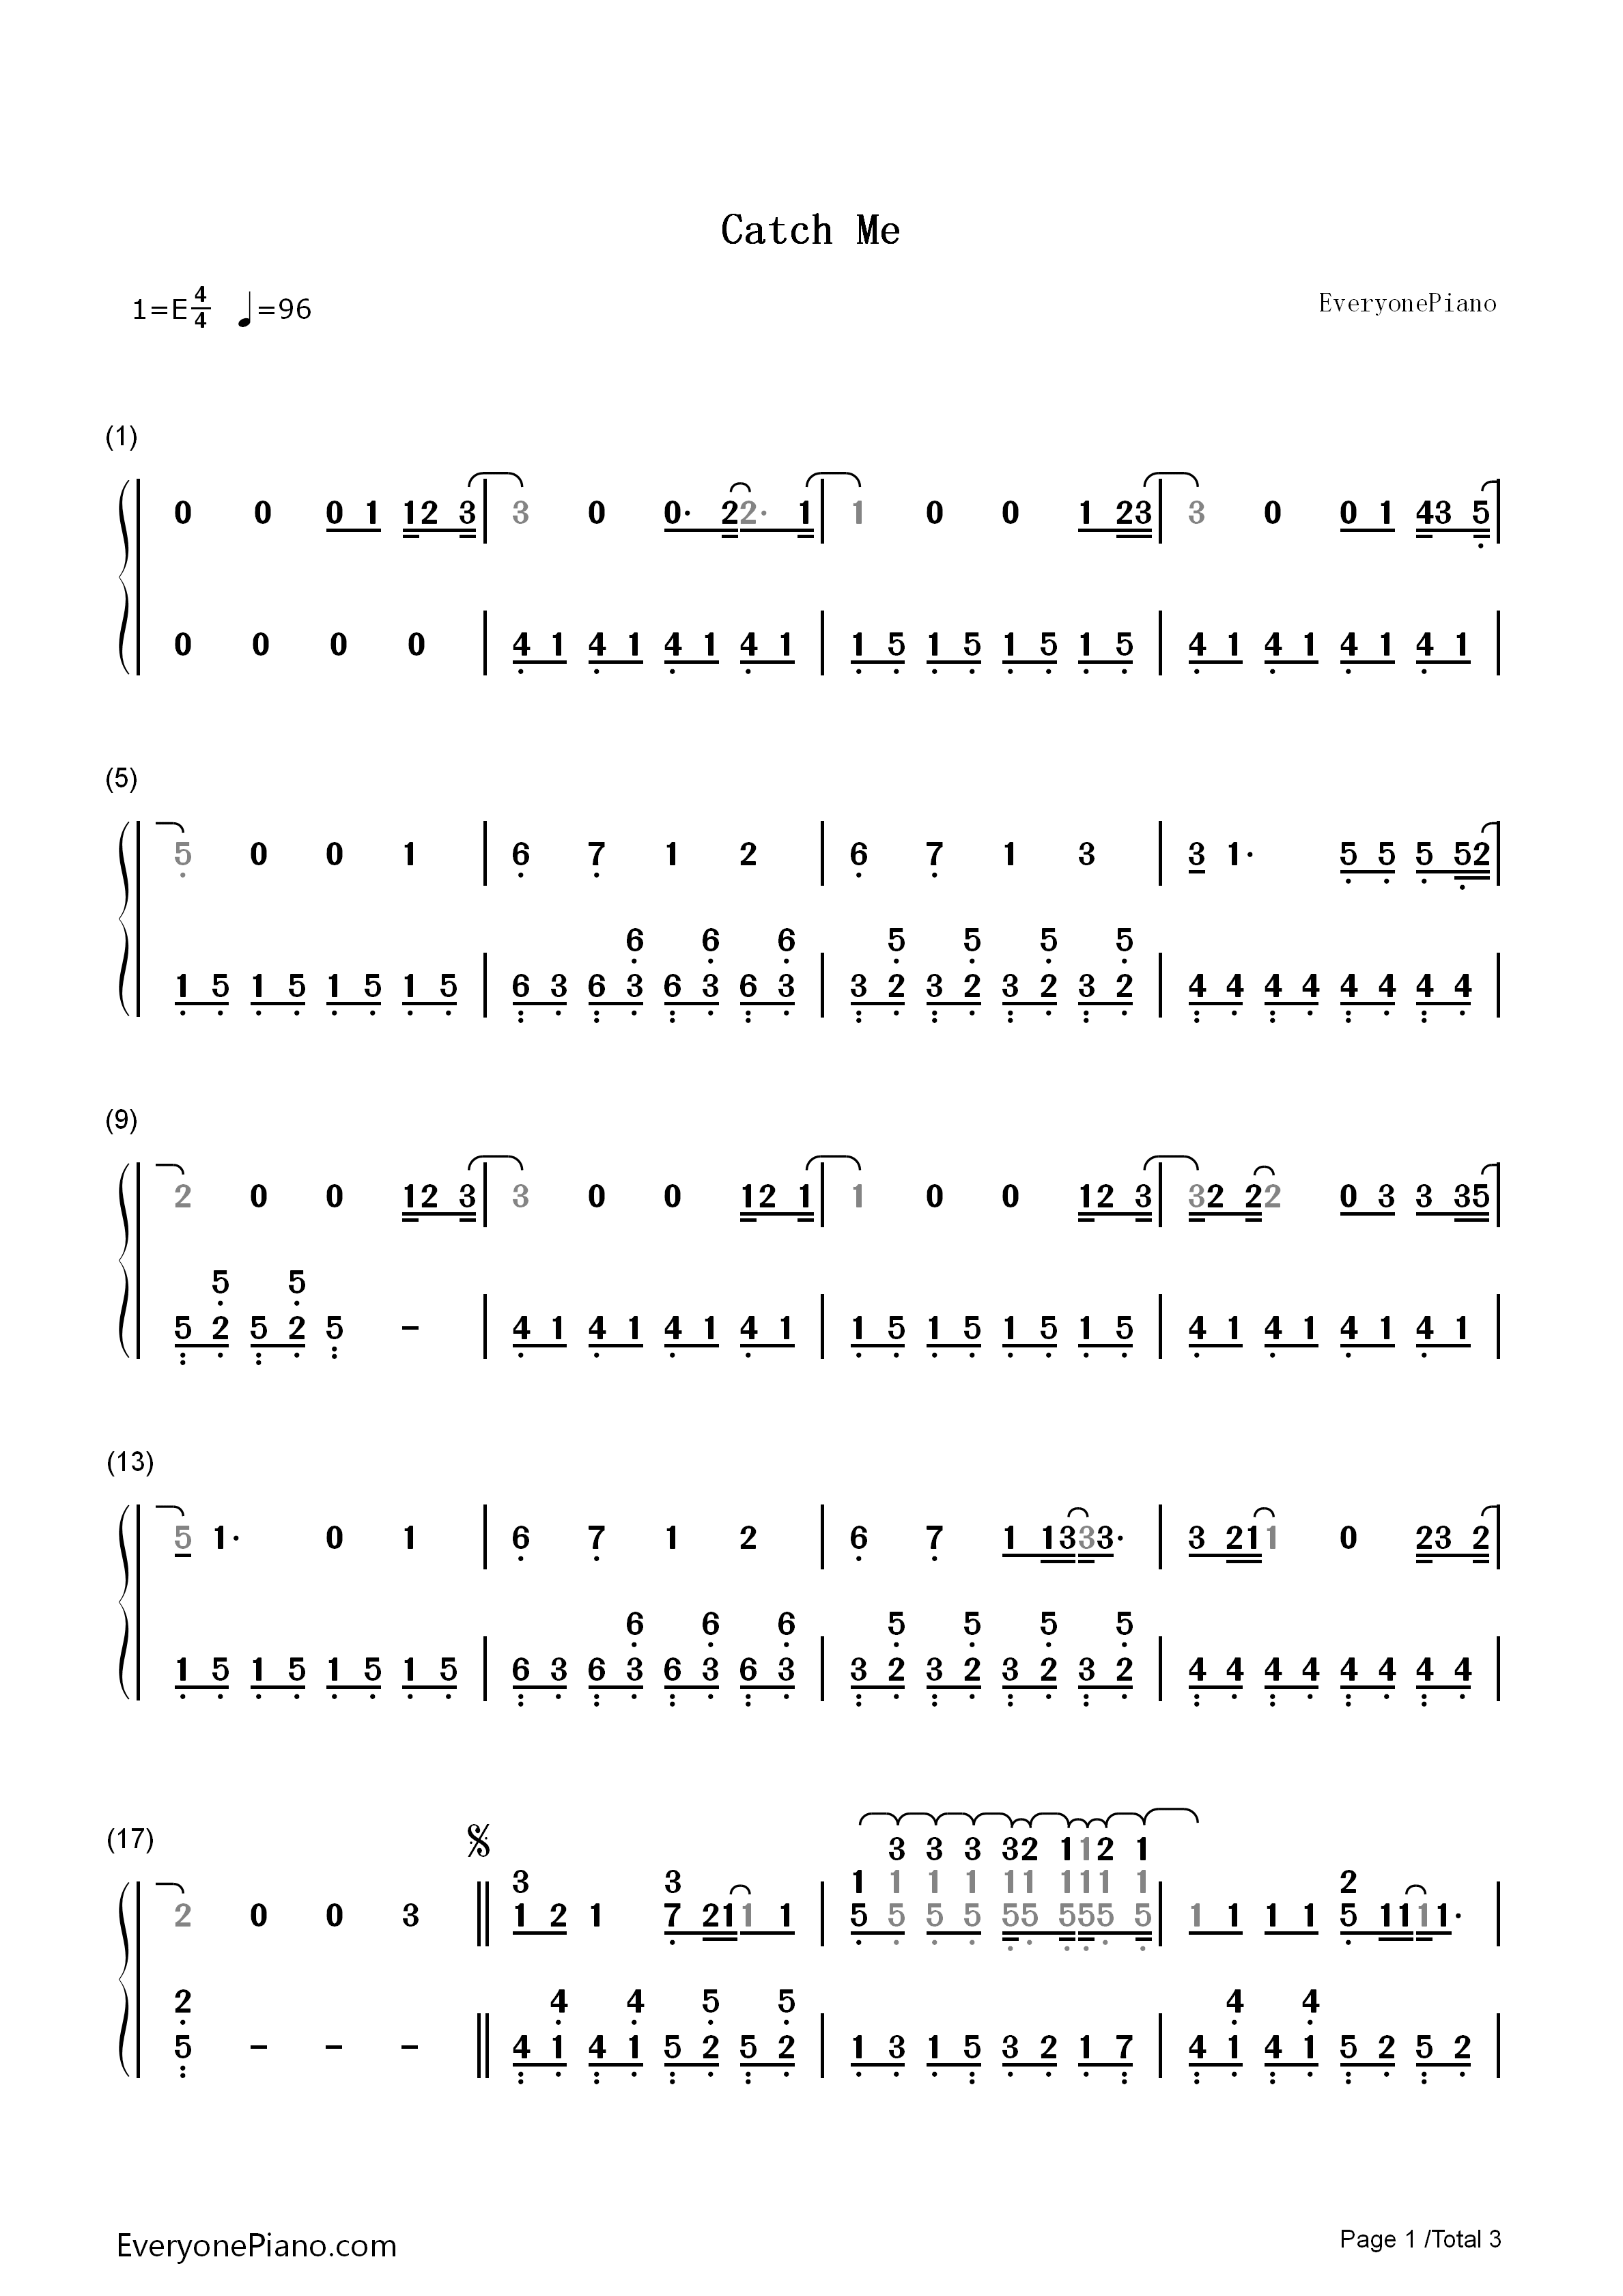 Catch me demi lovato numbered musical notation preview 1 free listen now print sheet catch me demi lovato numbered musical notation preview 1 hexwebz Gallery